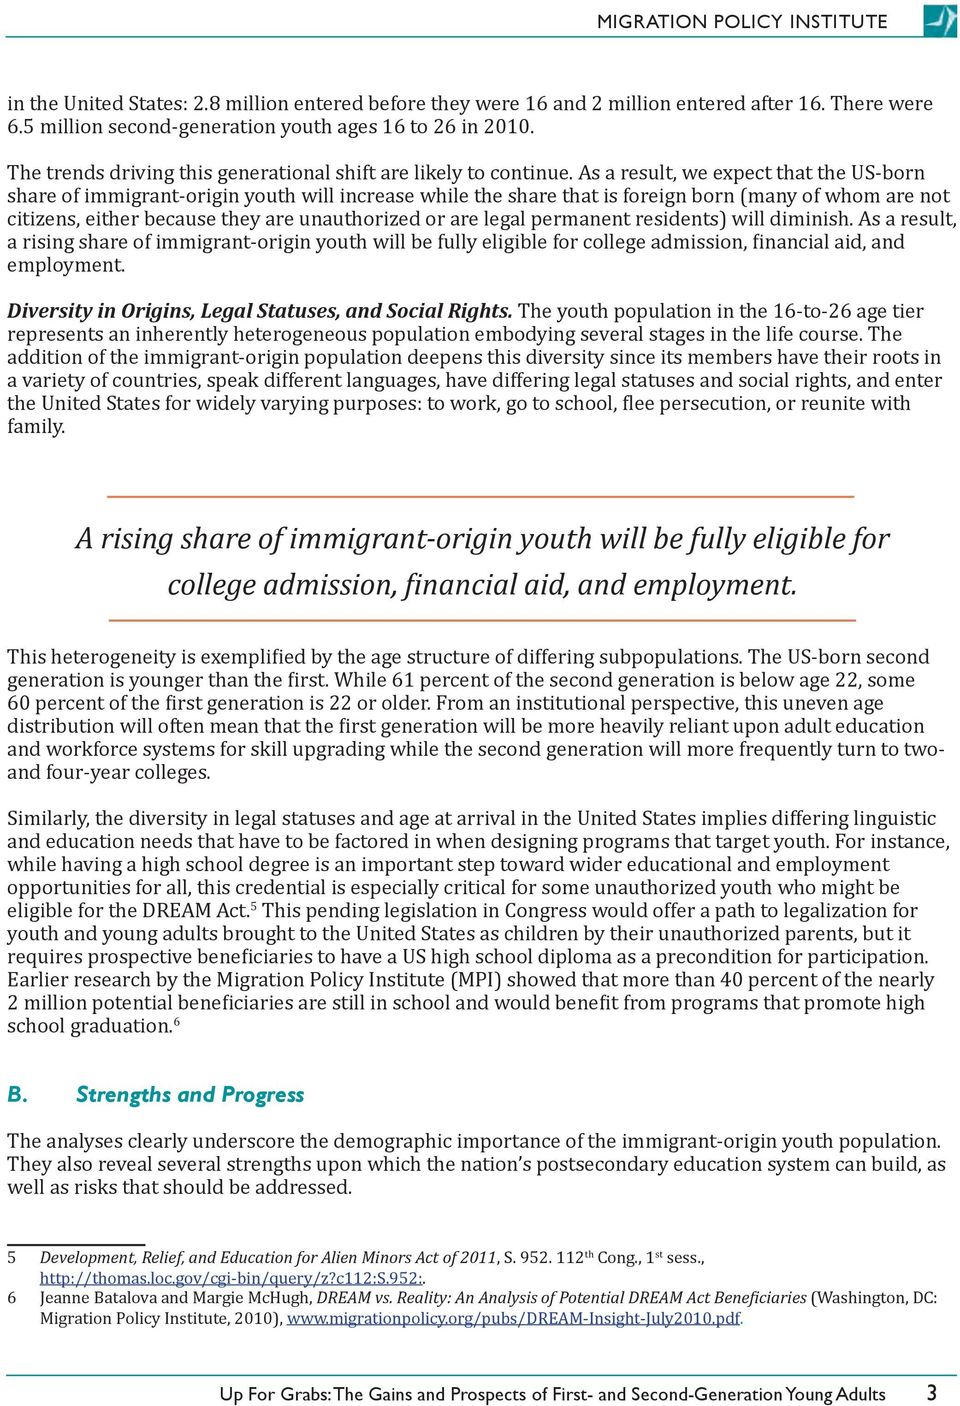 As a result, we expect that the US-born share of immigrant-origin youth will increase while the share that is foreign born (many of whom are not citizens, either because they are unauthorized or are